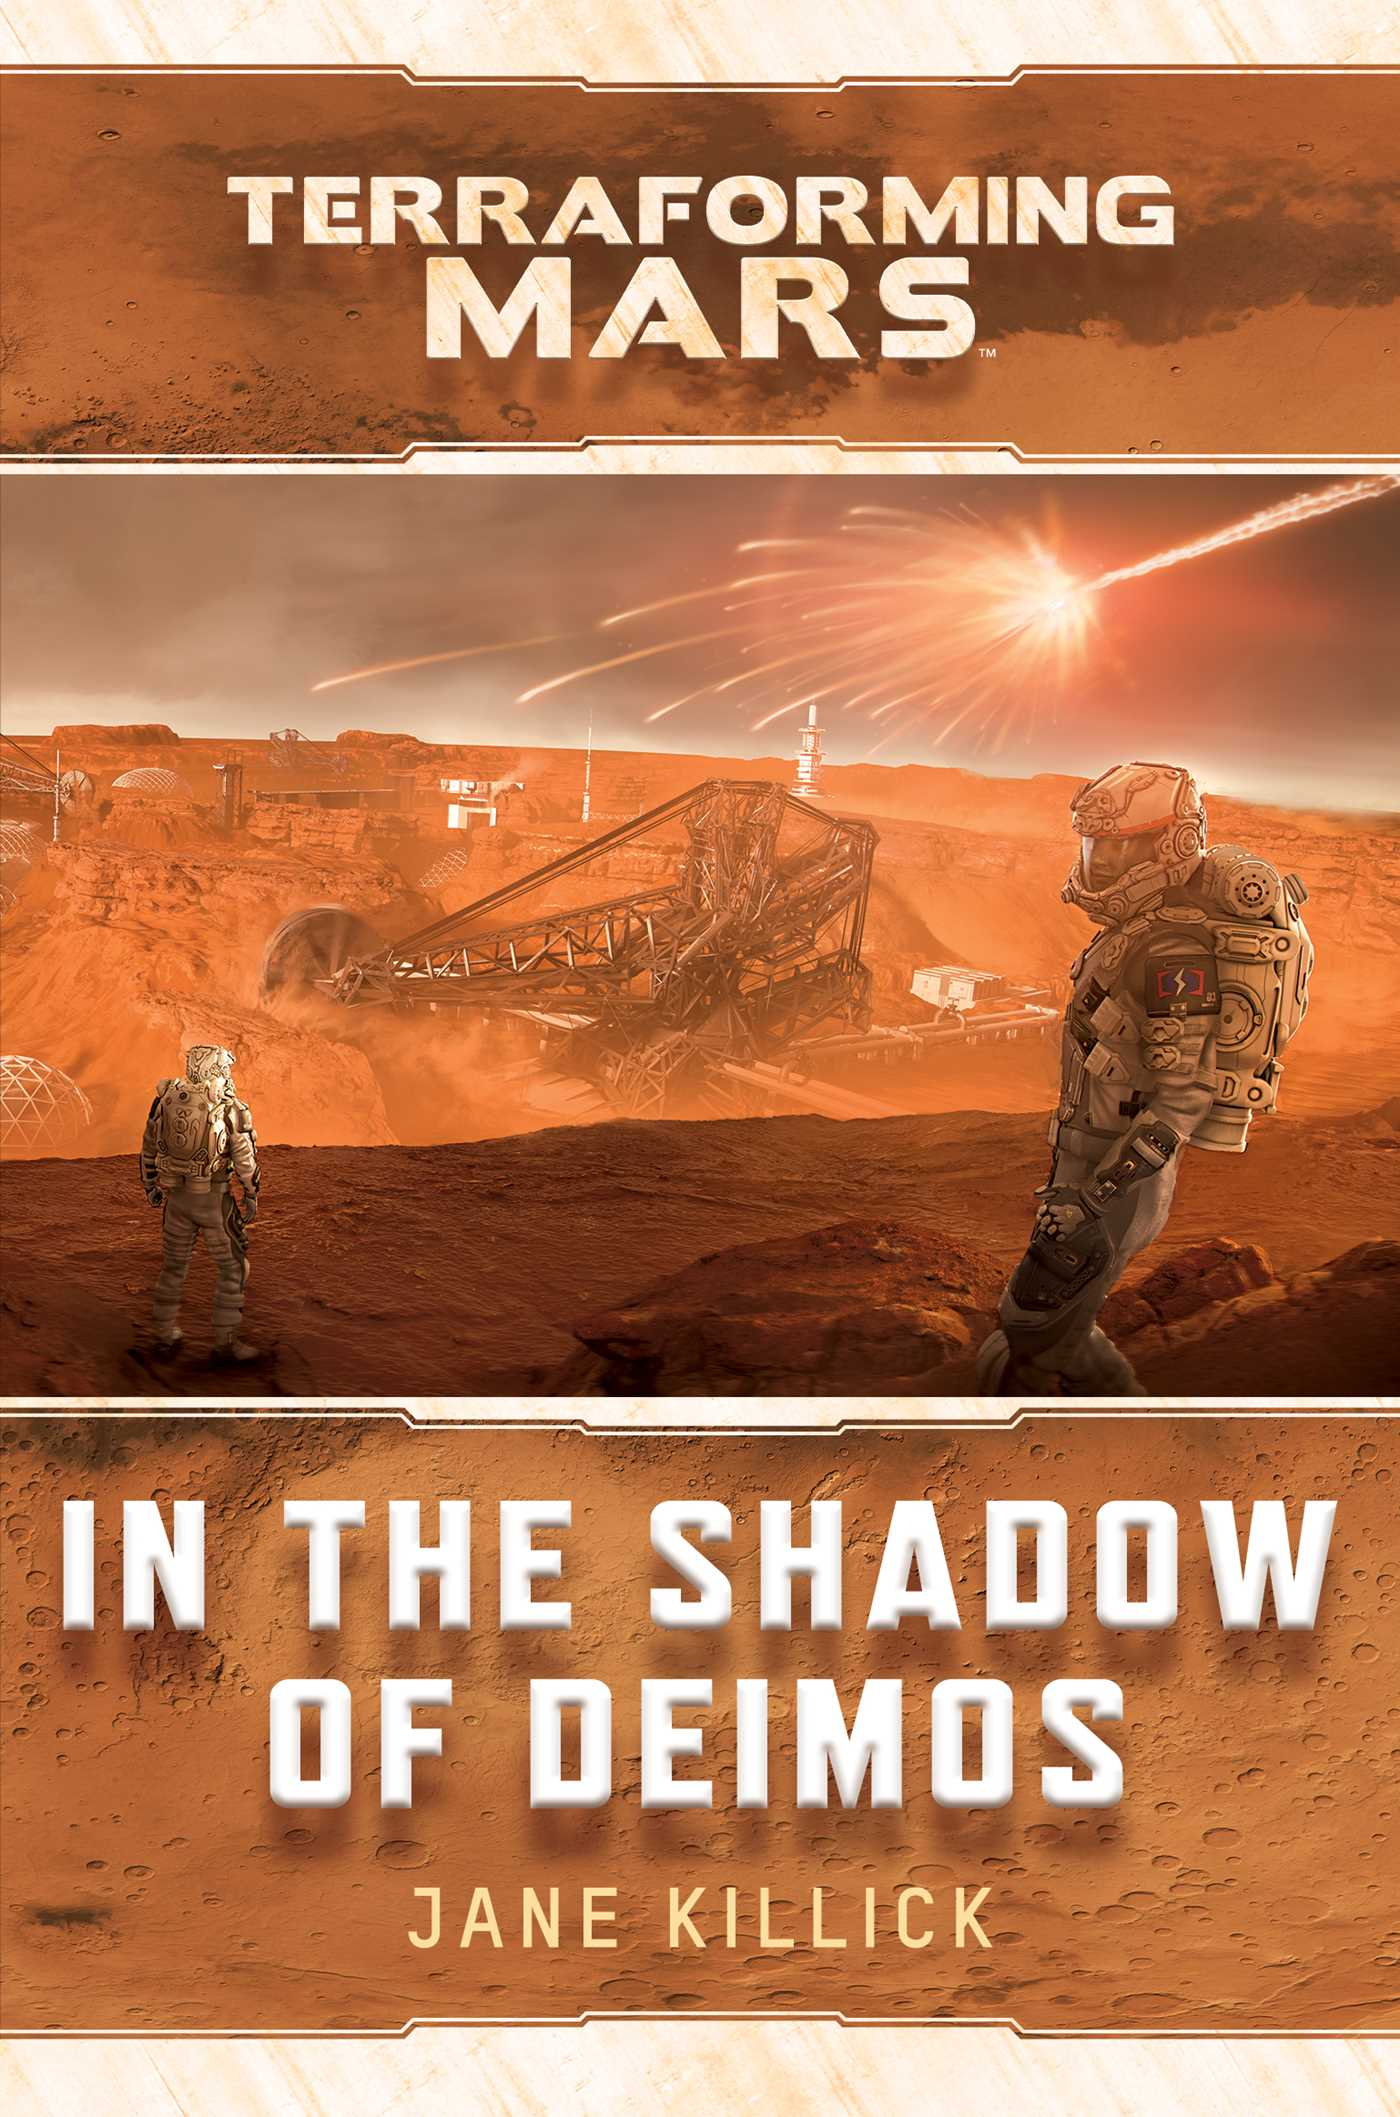 In the Shadow of Deimos by Jane Killick